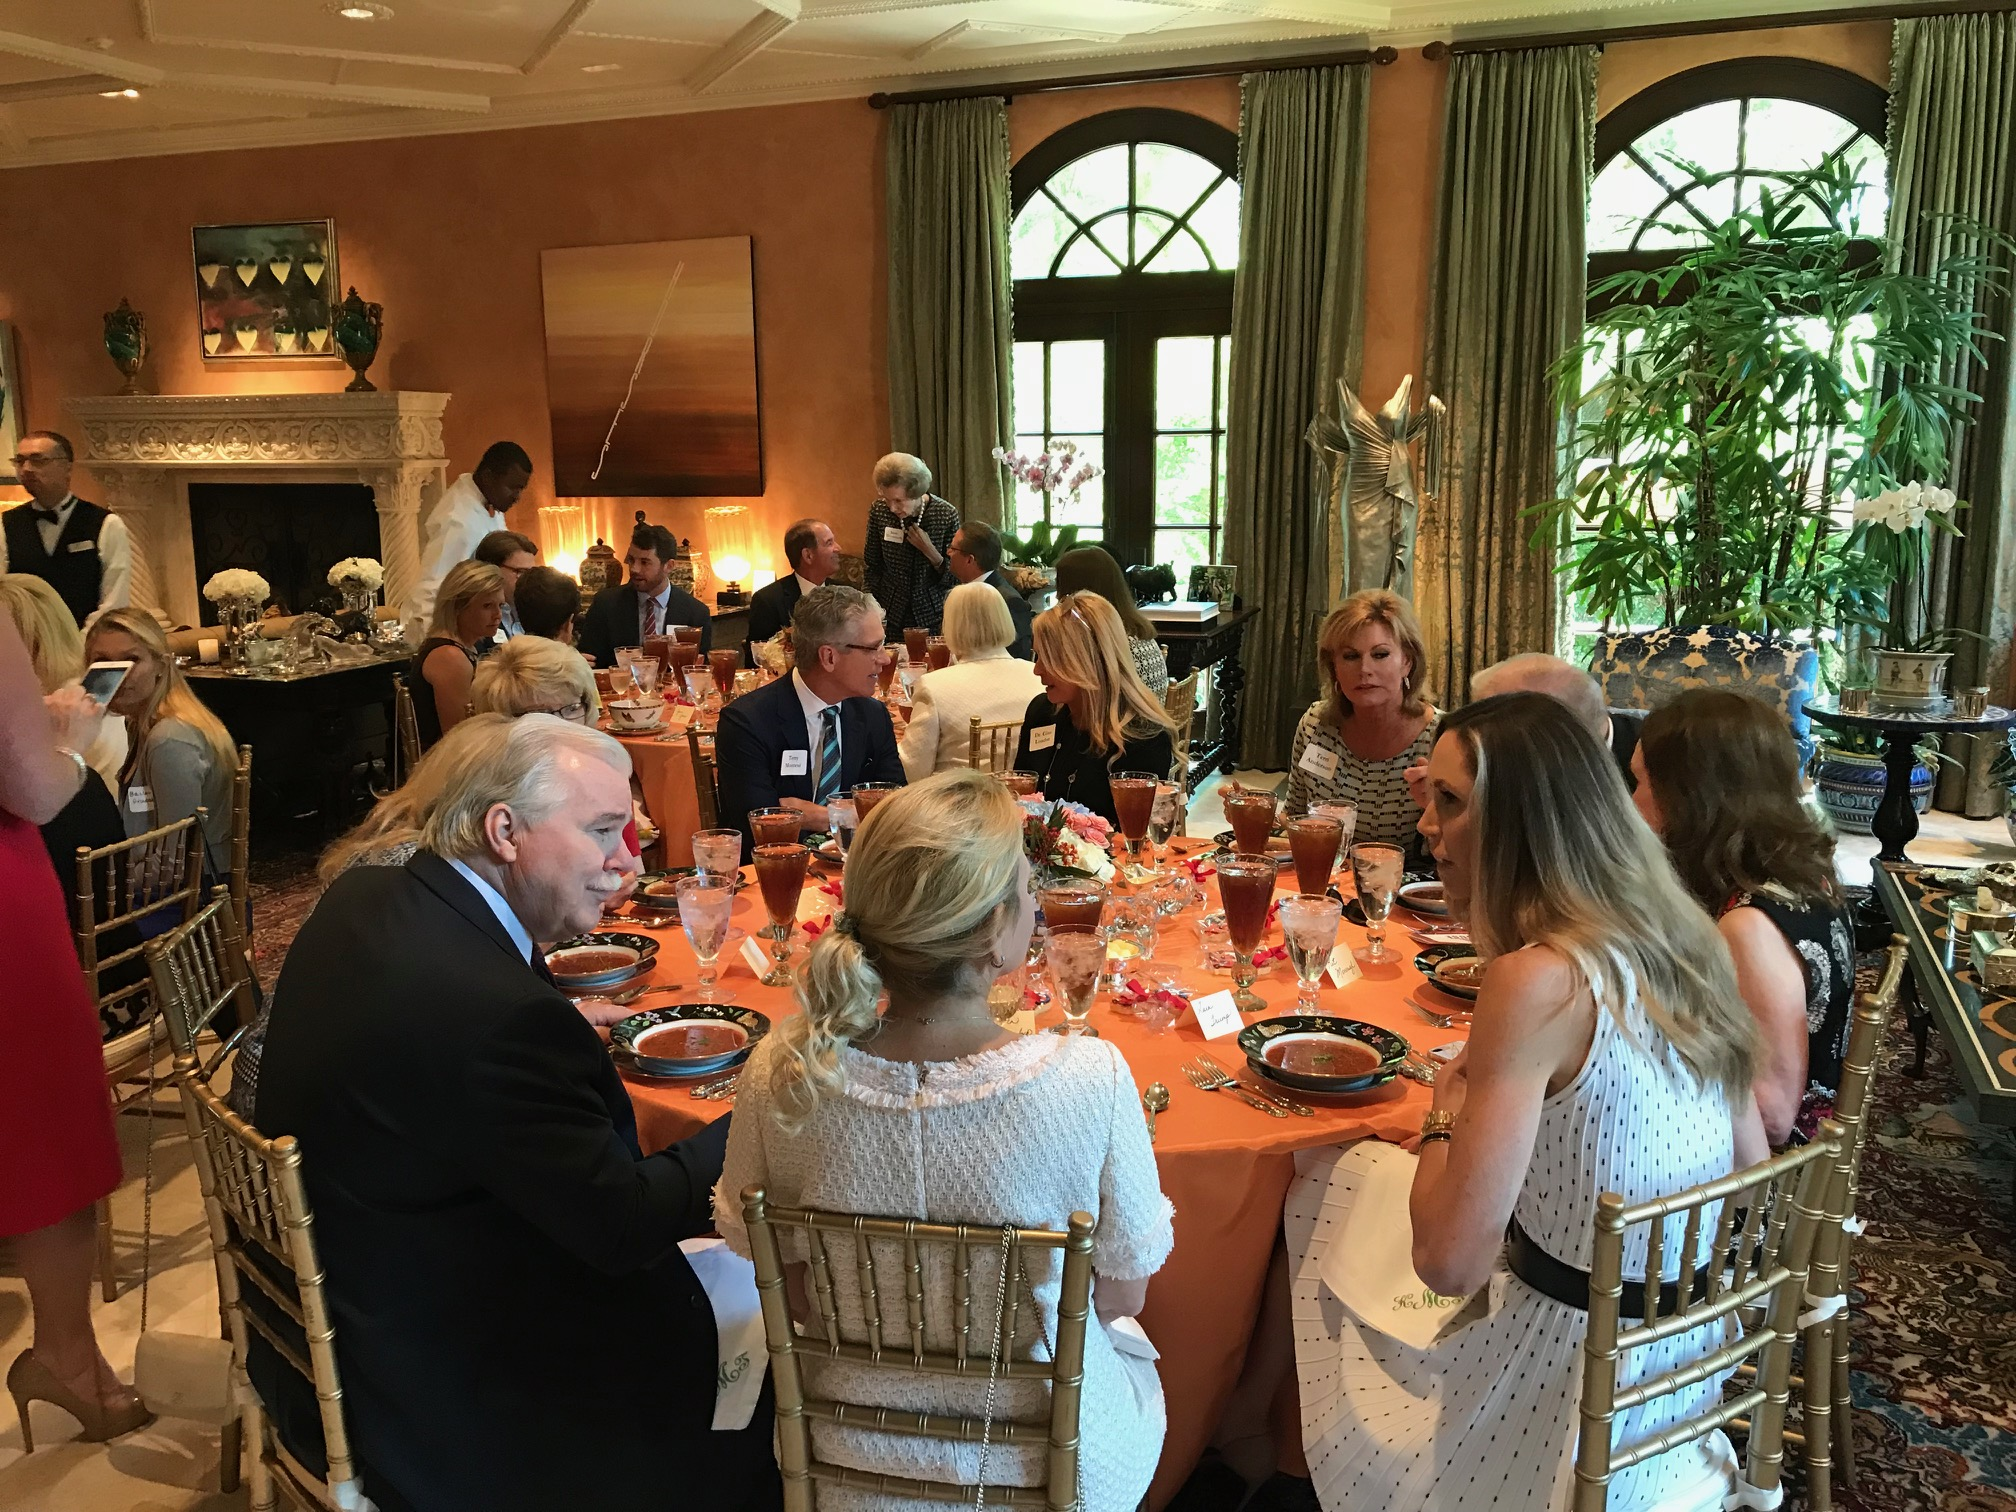 Trump Victory luncheon in Fort Worth with Lara Trump in 2018.